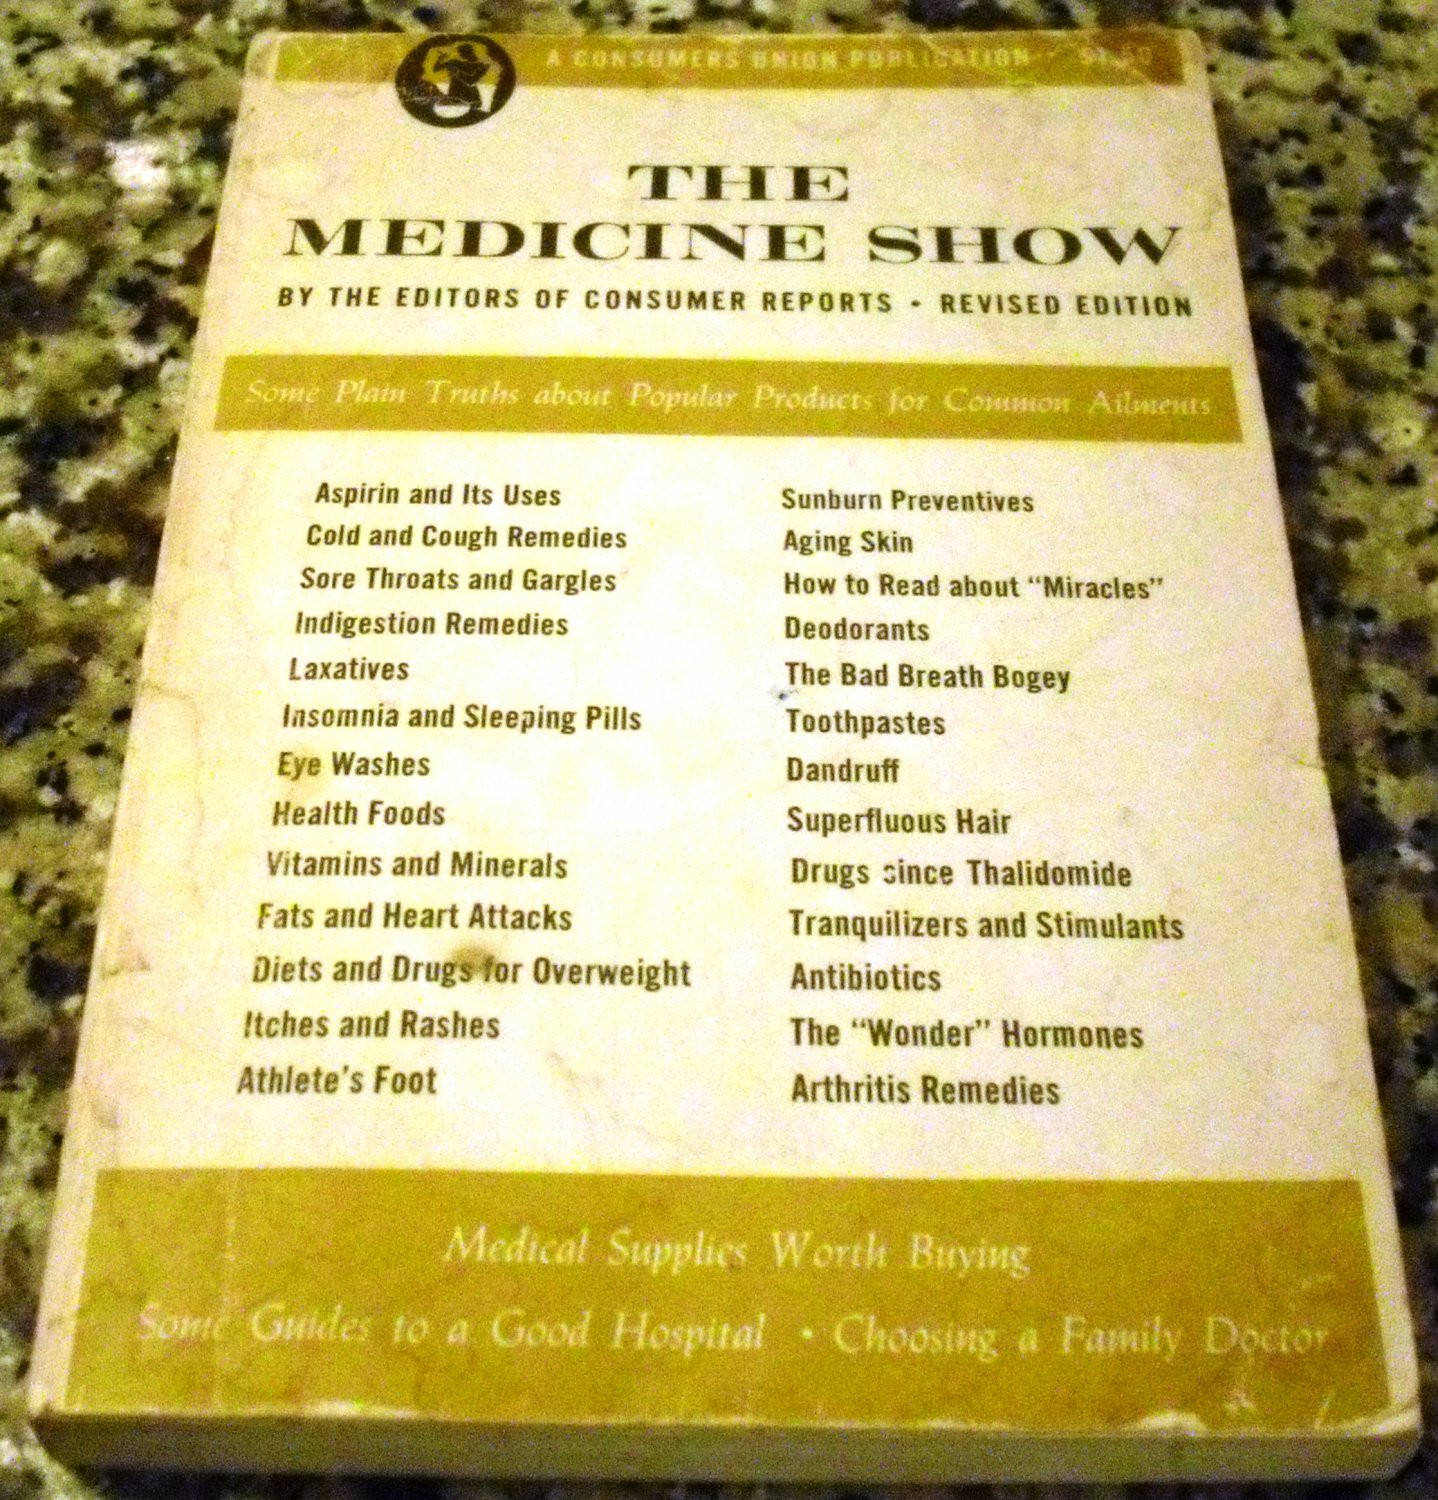 THE MEDICINE SHOW 1963 Edition A Consumers Union Publication Paperback � January 1, 1963